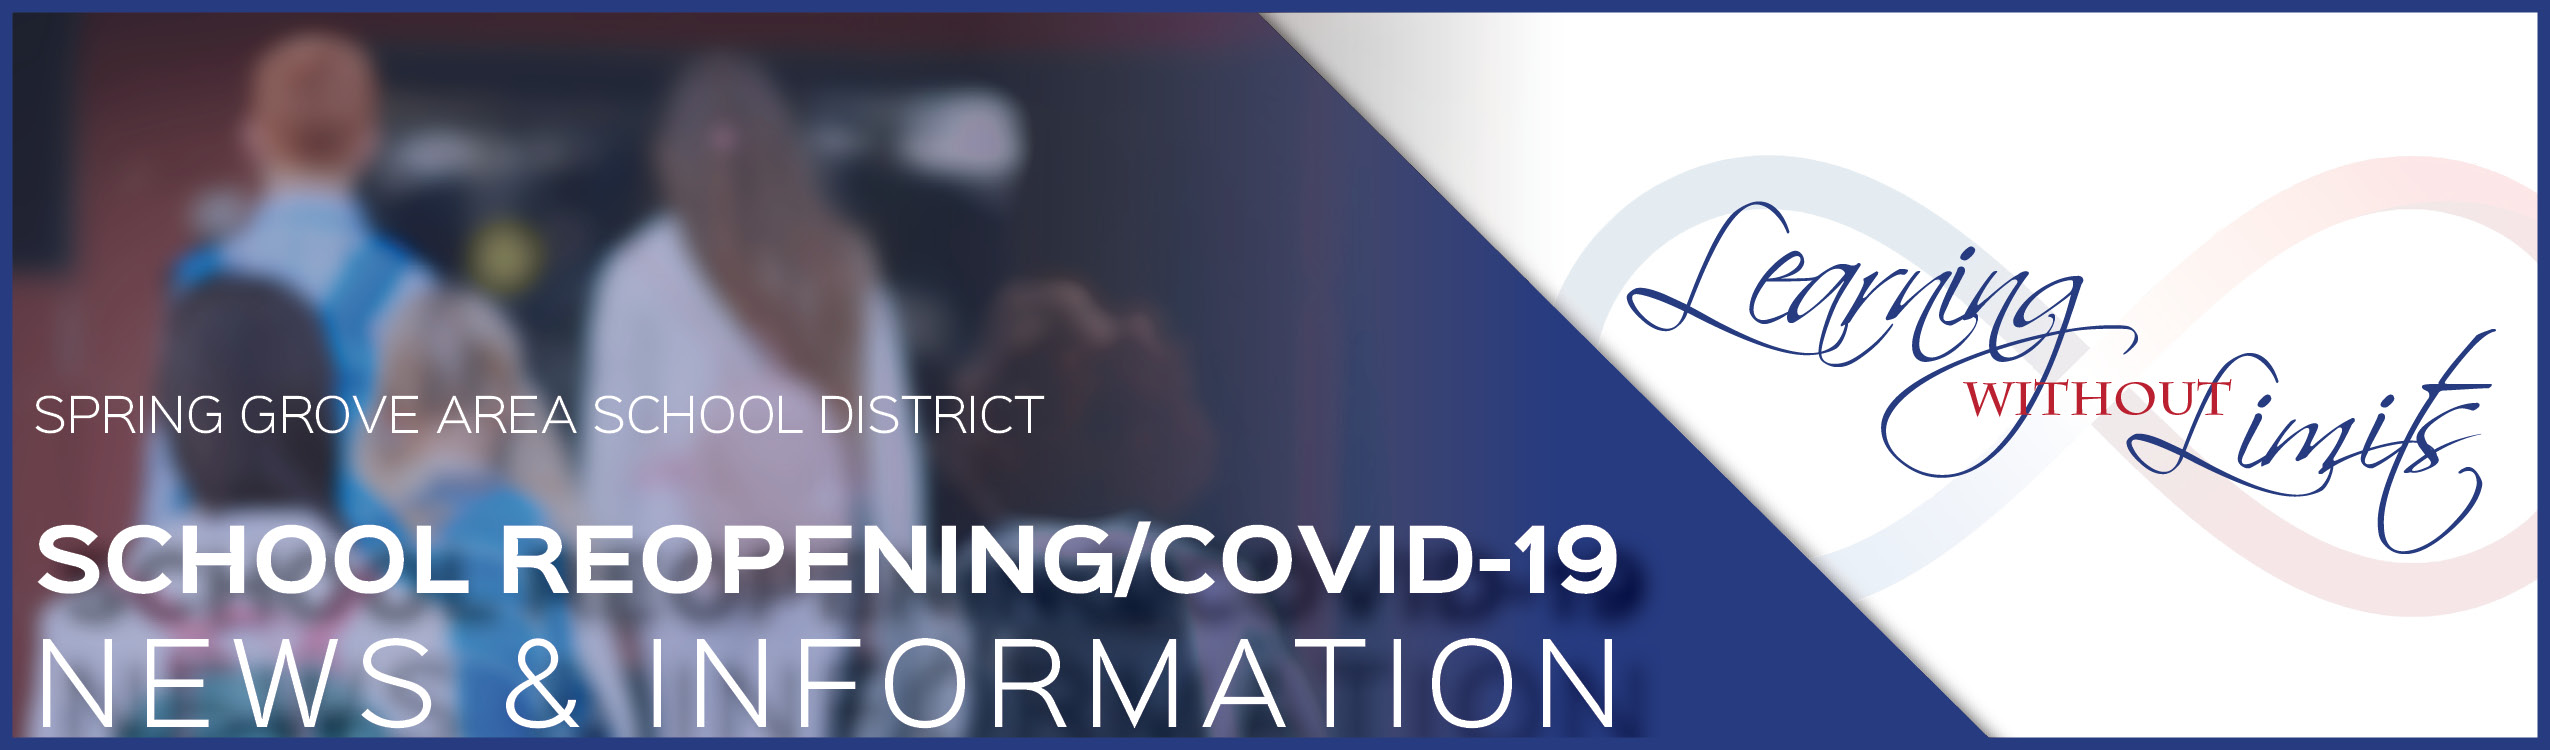 Spring Grove Area School District Reopening/COVID-19 News and Information